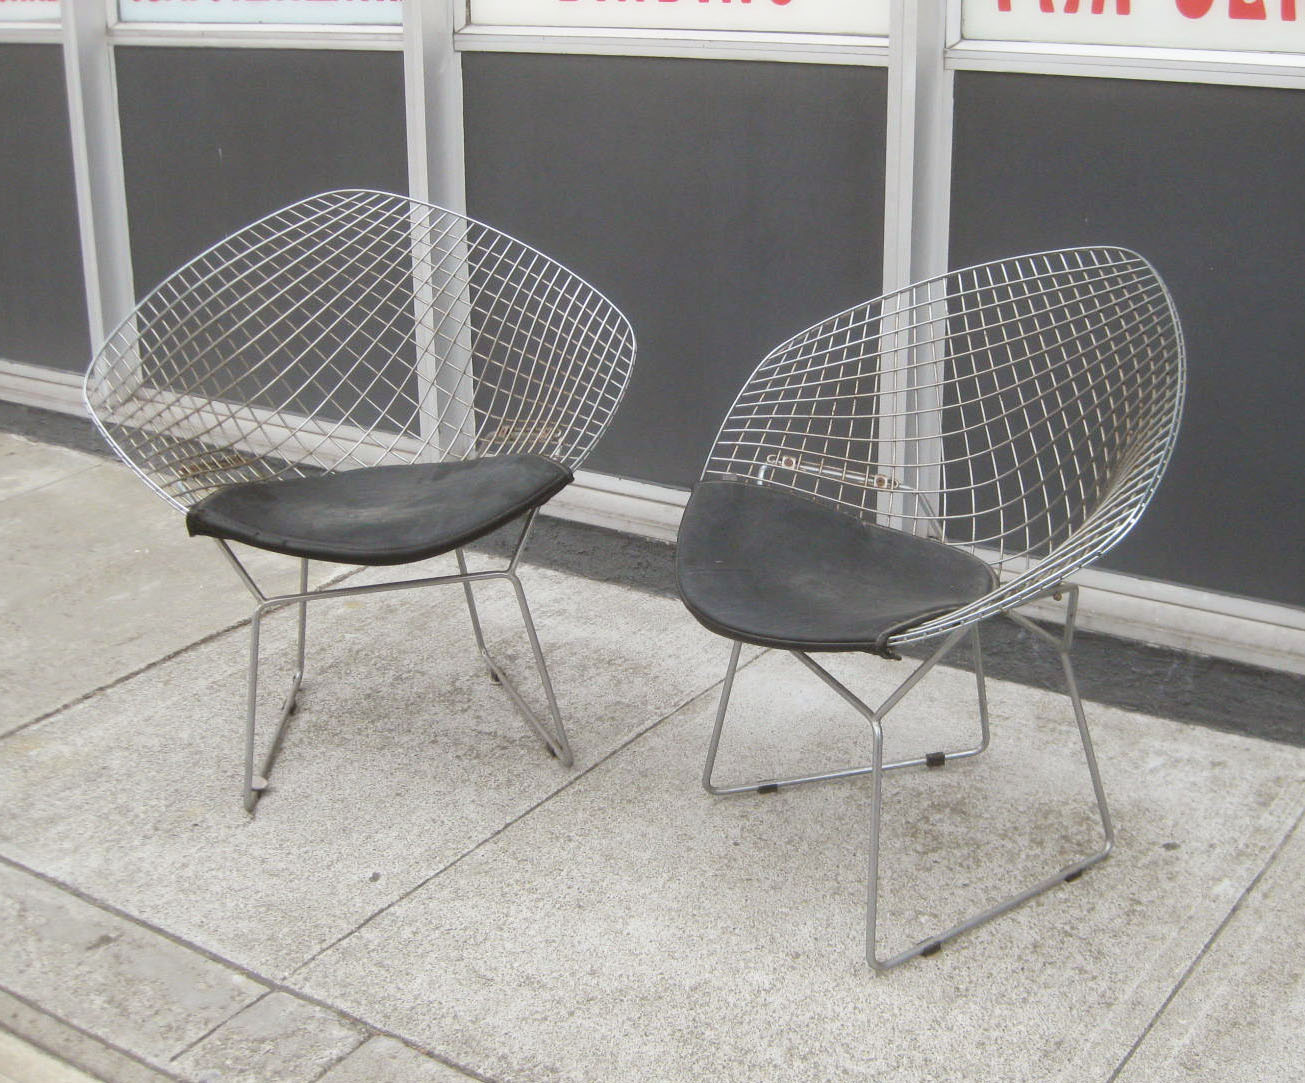 Metal Bucket Chairs Walmart.com Chair Covers Uhuru Furniture And Collectibles Sold Retro